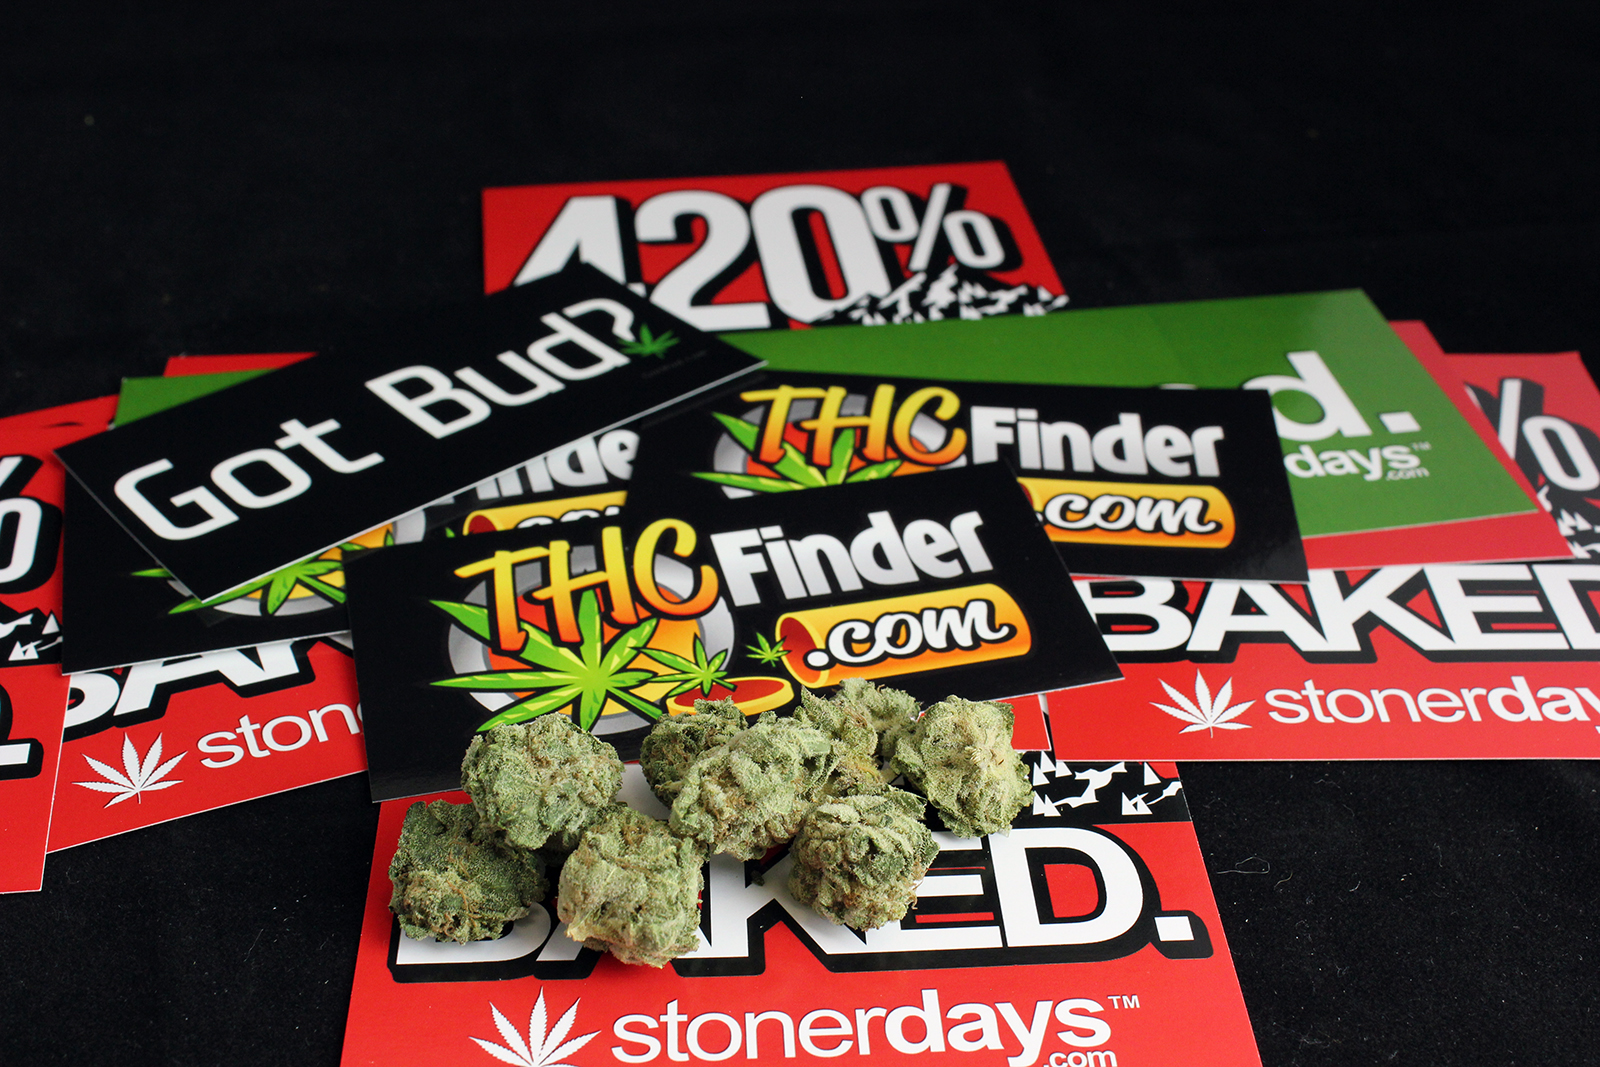 got-bud-thcfinder-sd